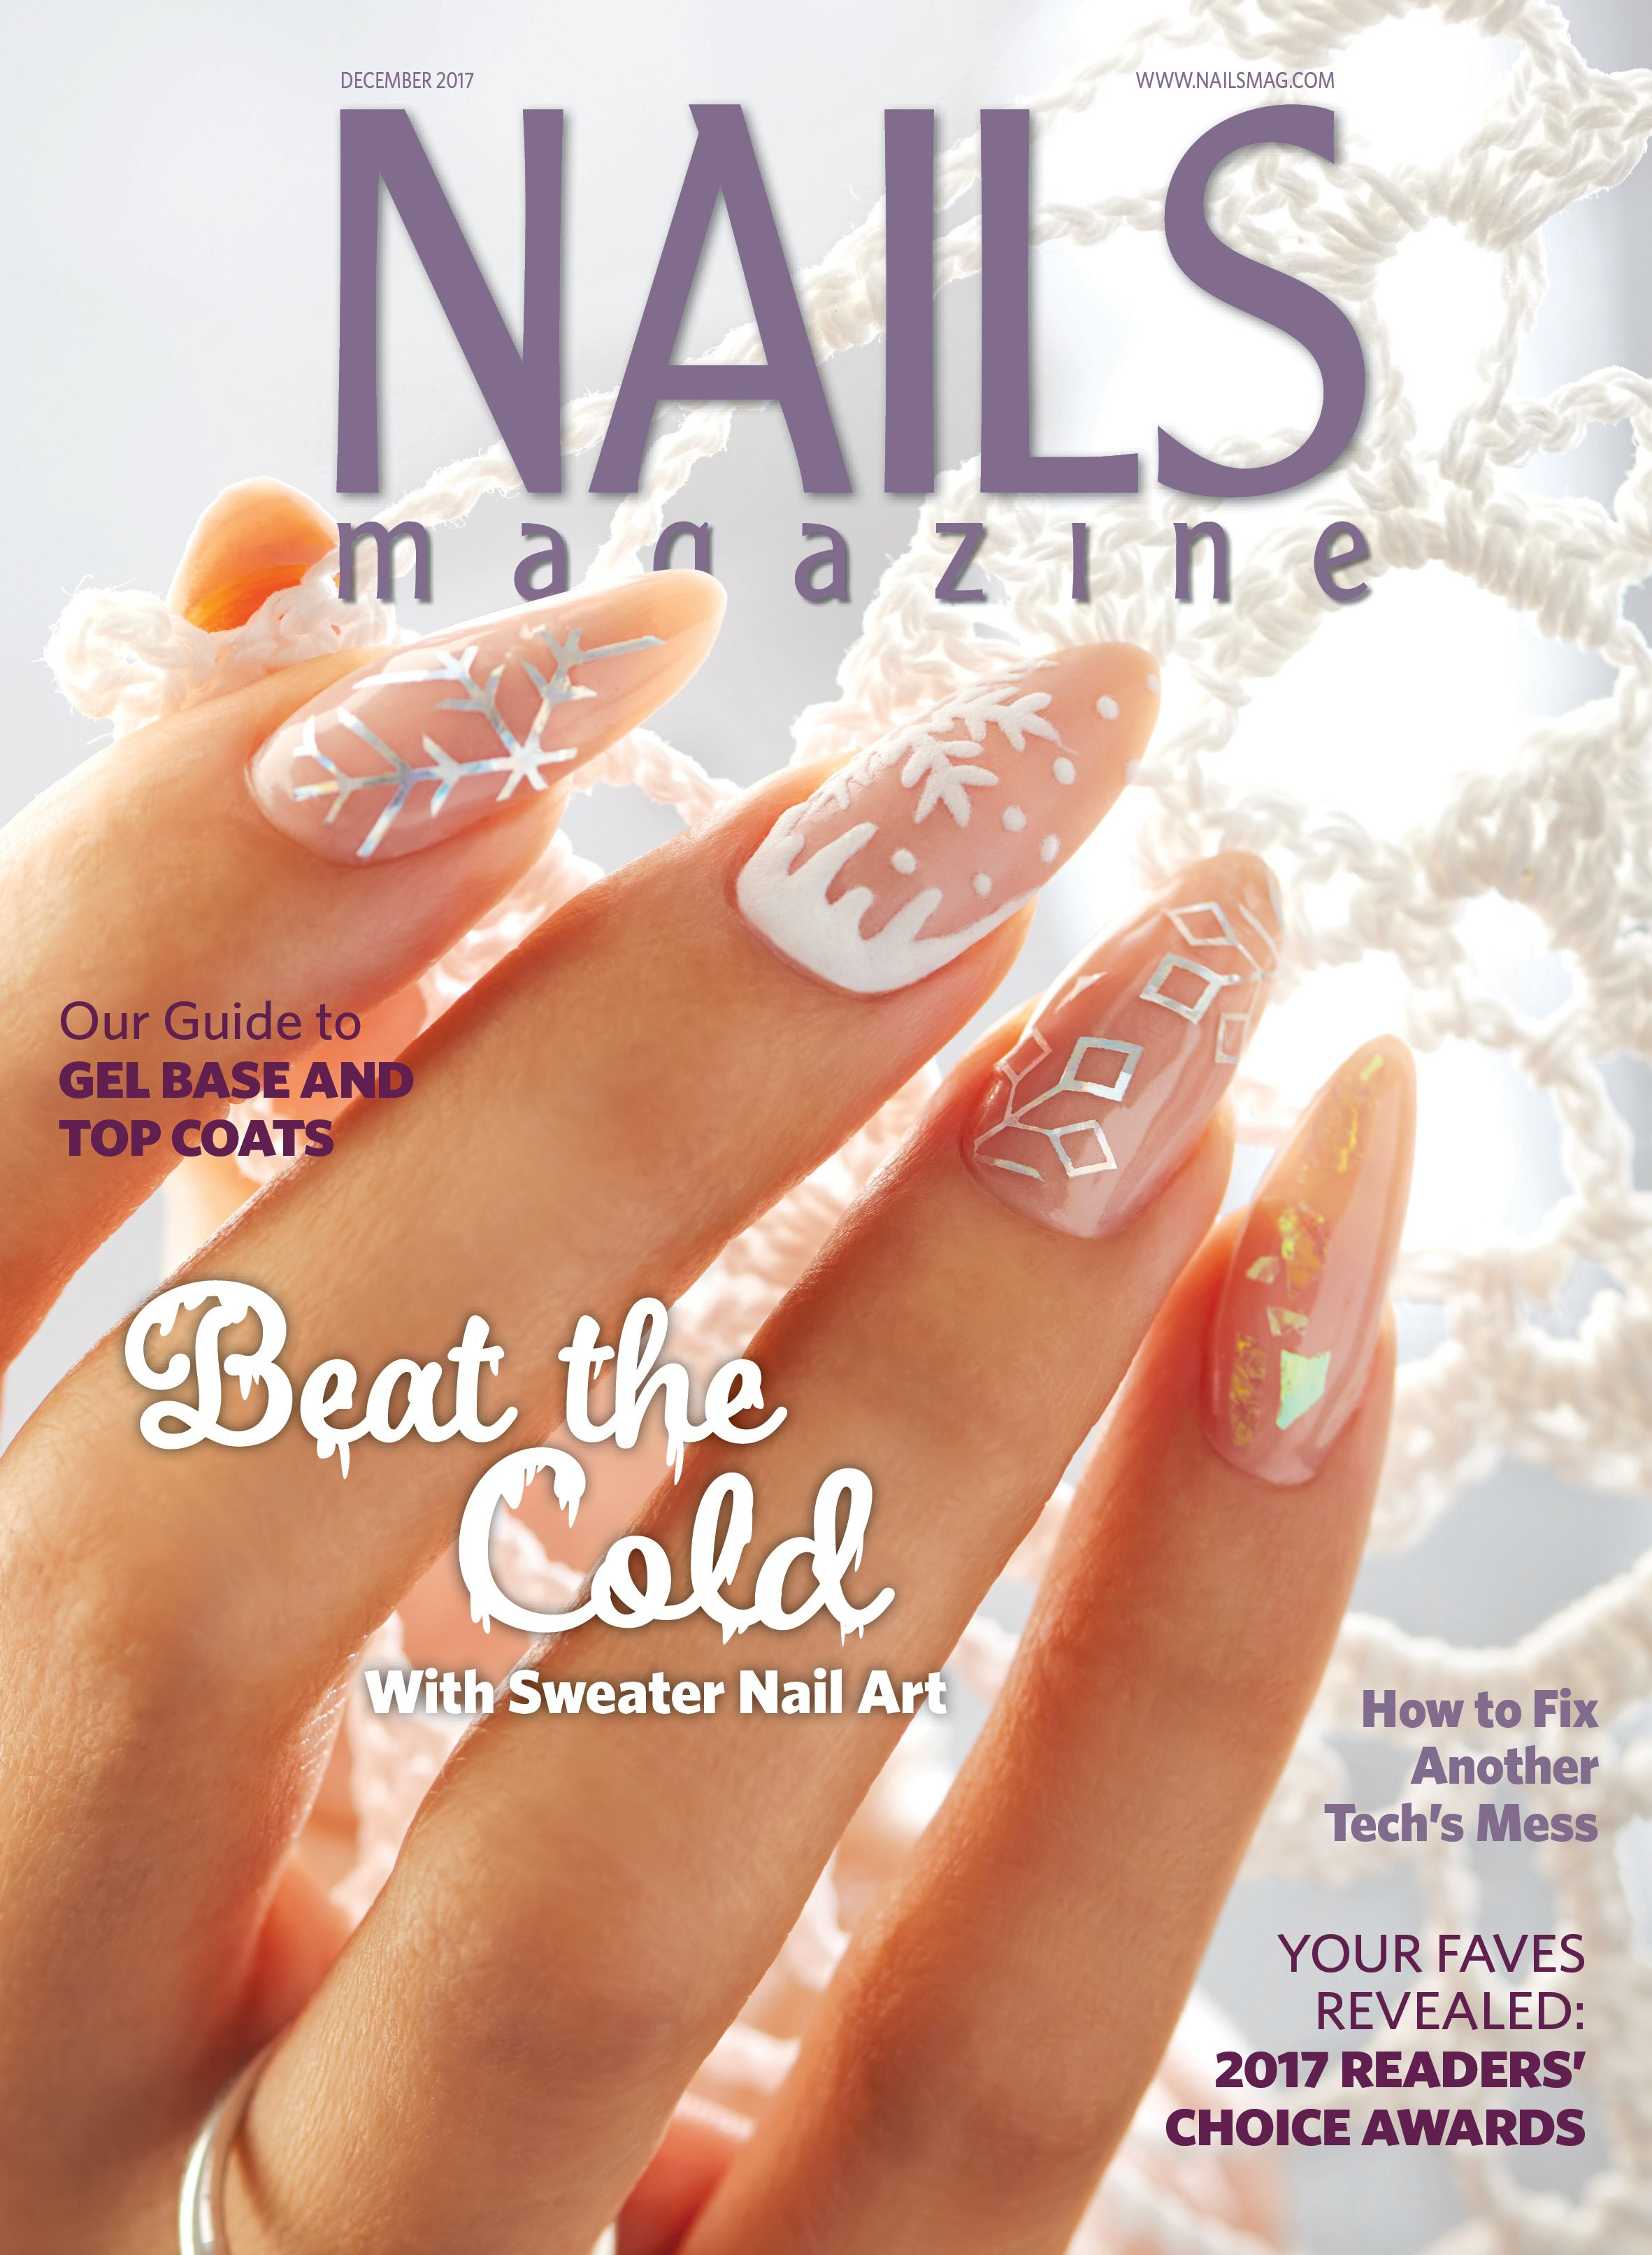 NAILS Magazine | December 2017 Issue